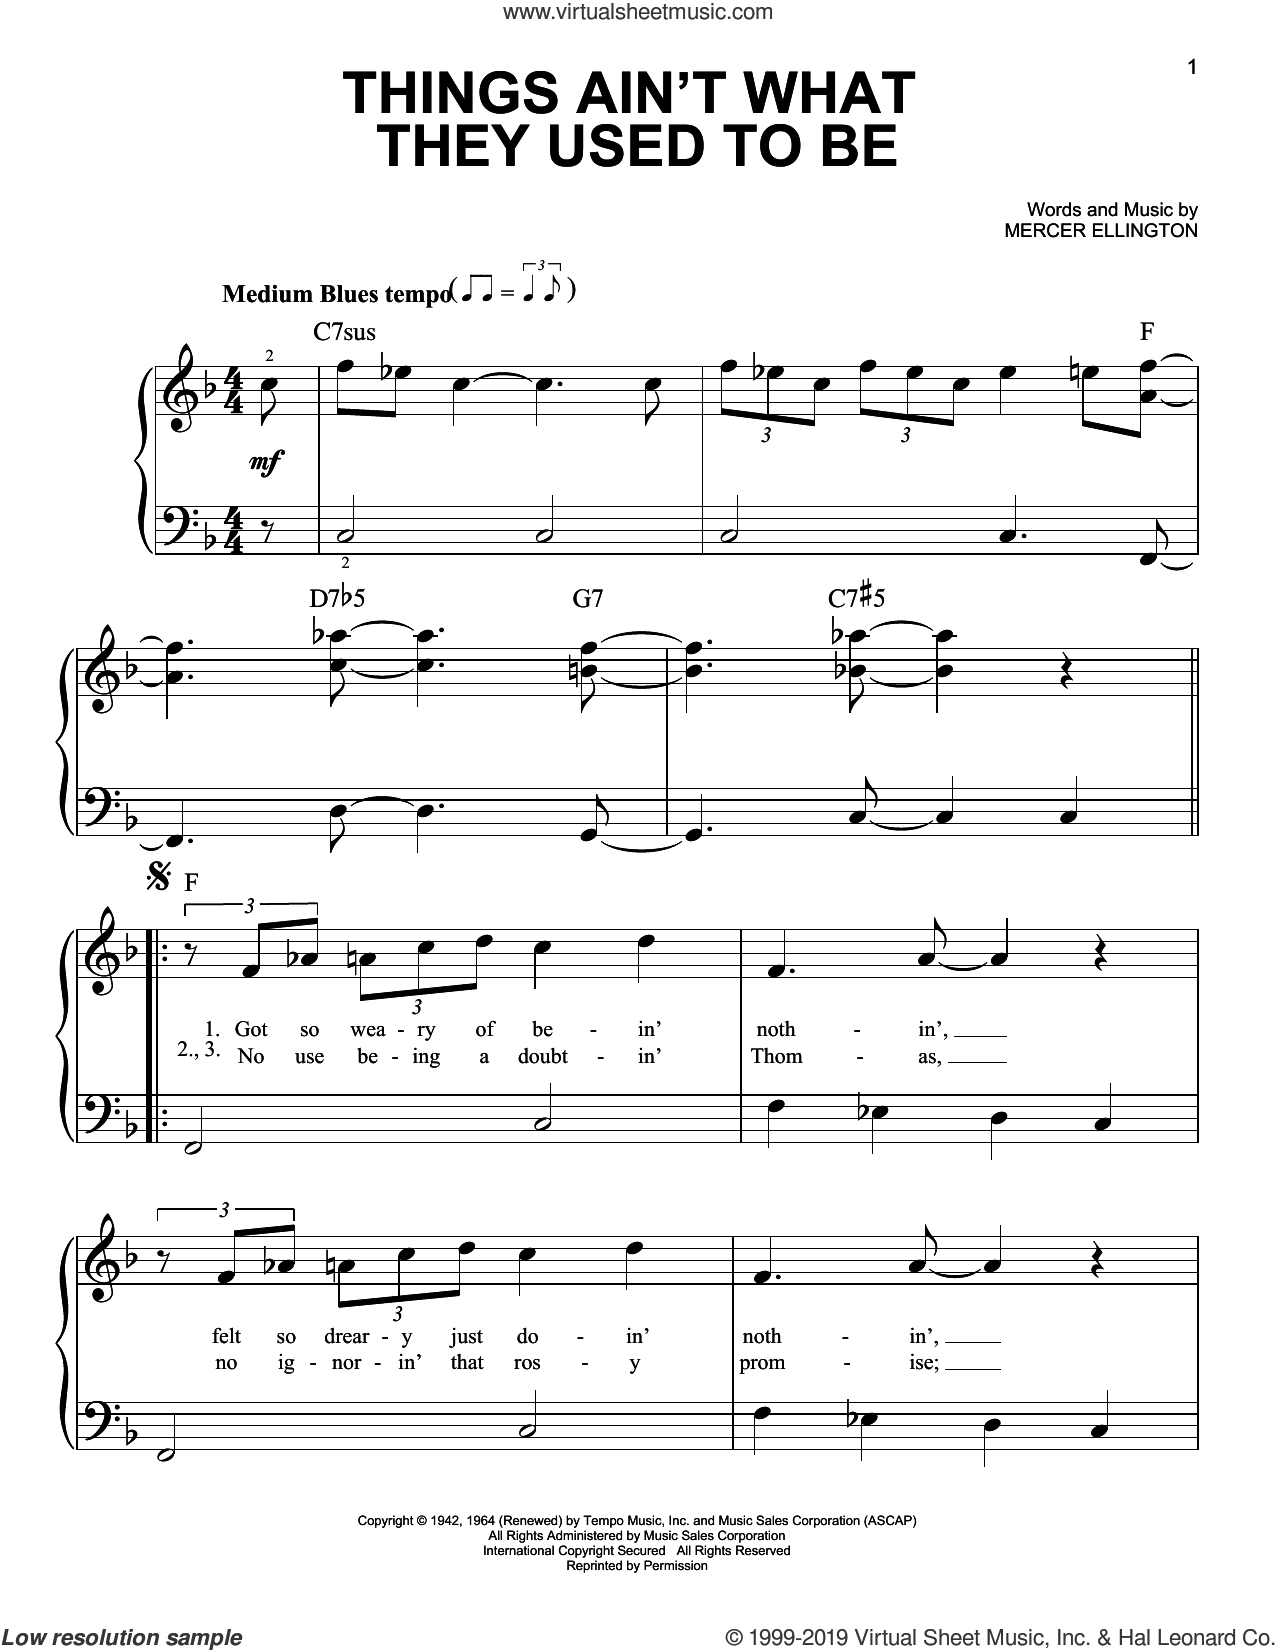 Things Ain't What They Used To Be sheet music for piano solo by Duke Ellington and Mercer Ellington, beginner skill level